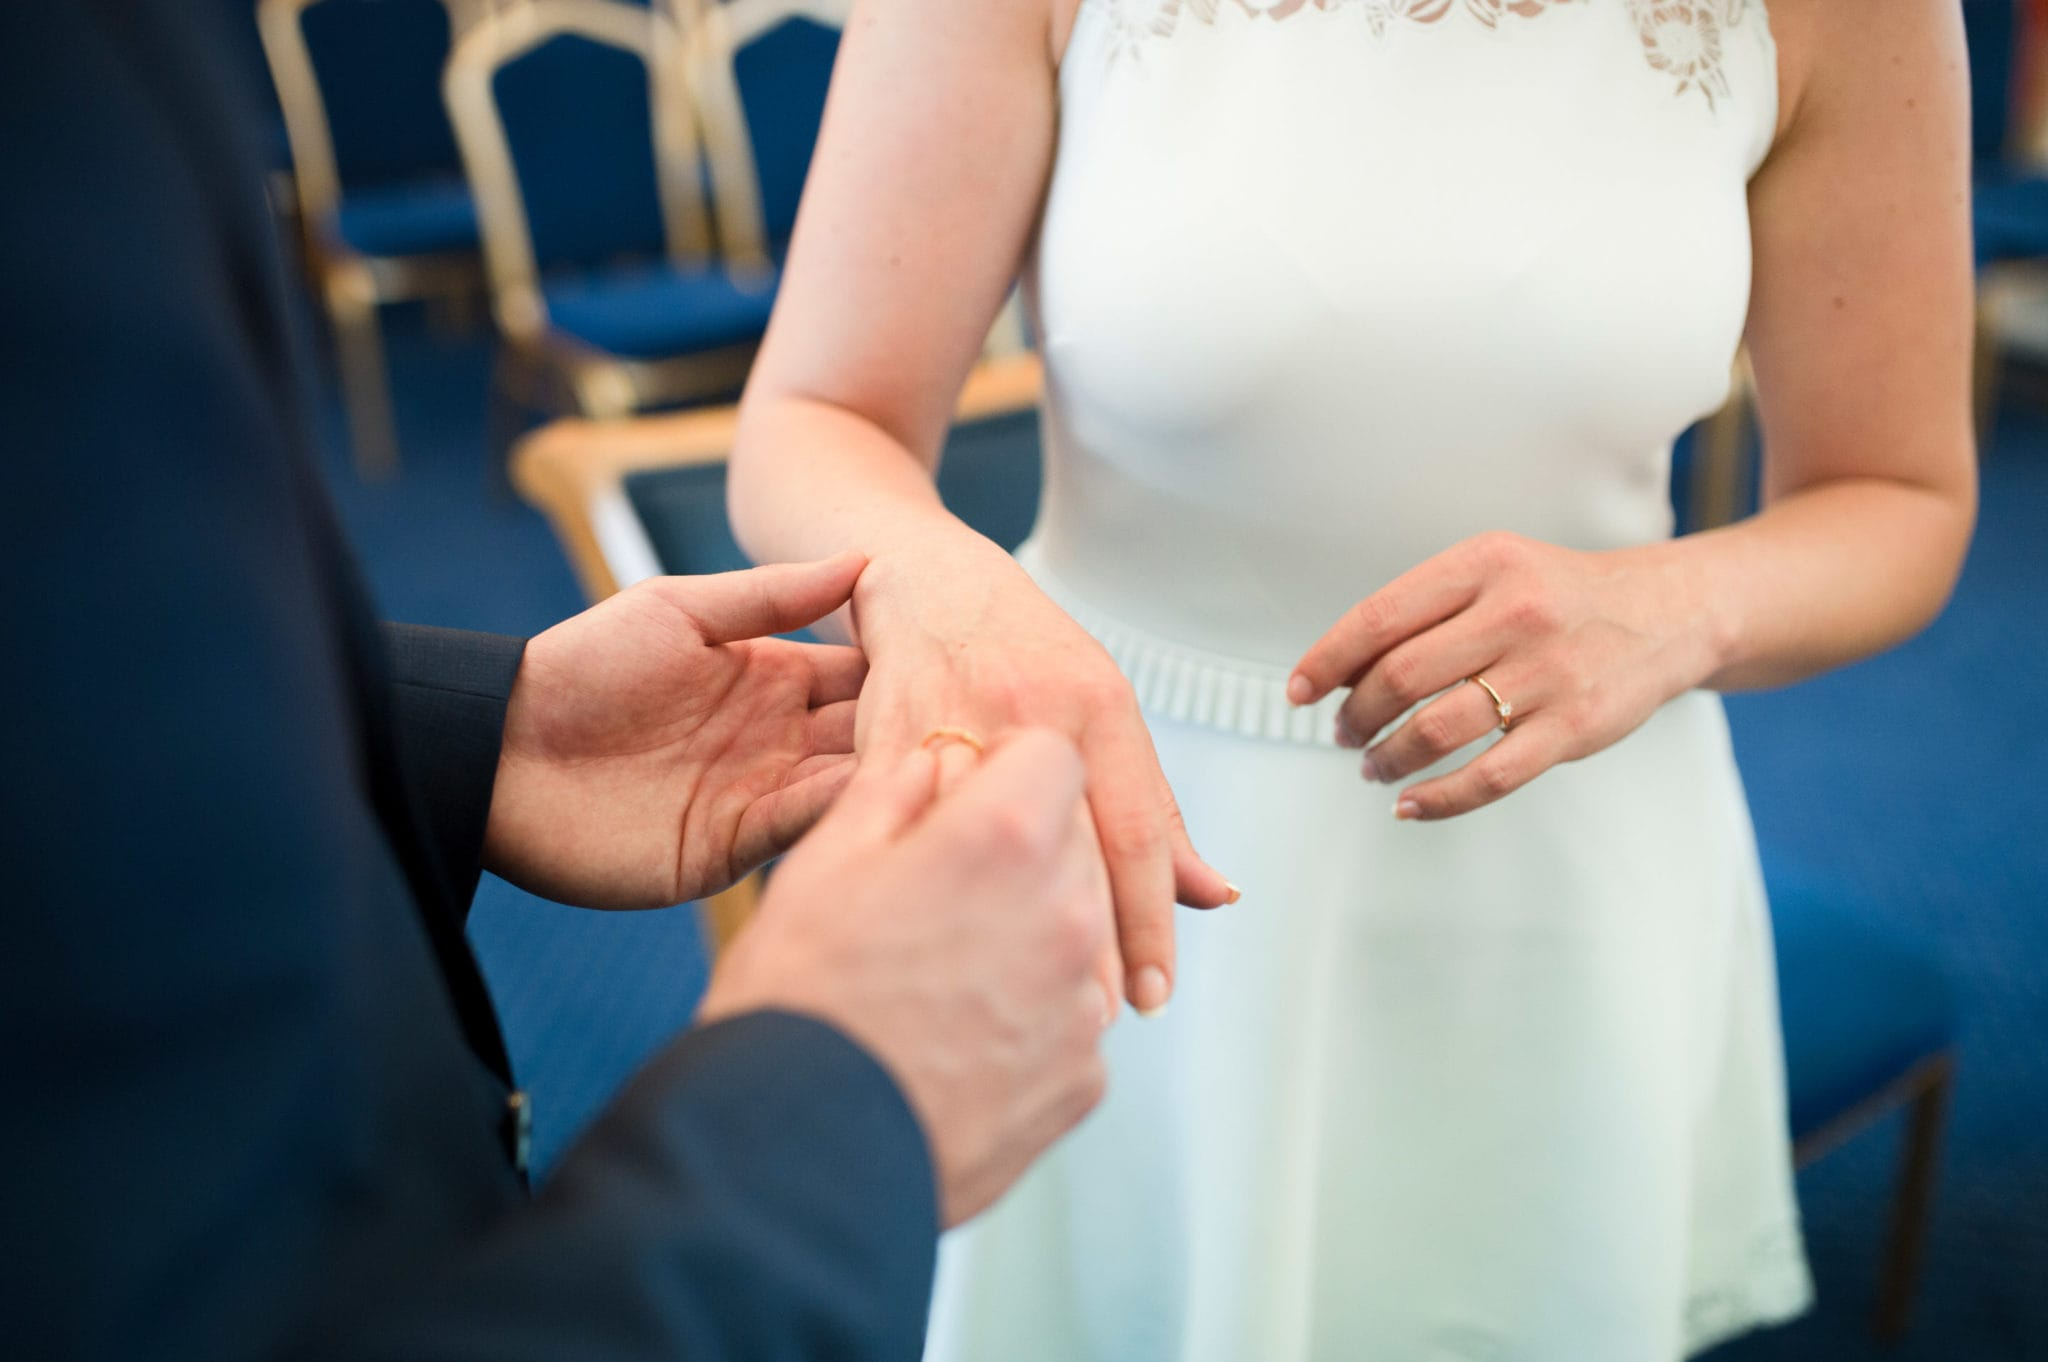 bride and groom Bromley on Bow Registry office, London UK Wedding photography ceremony room with the guest. ring echange